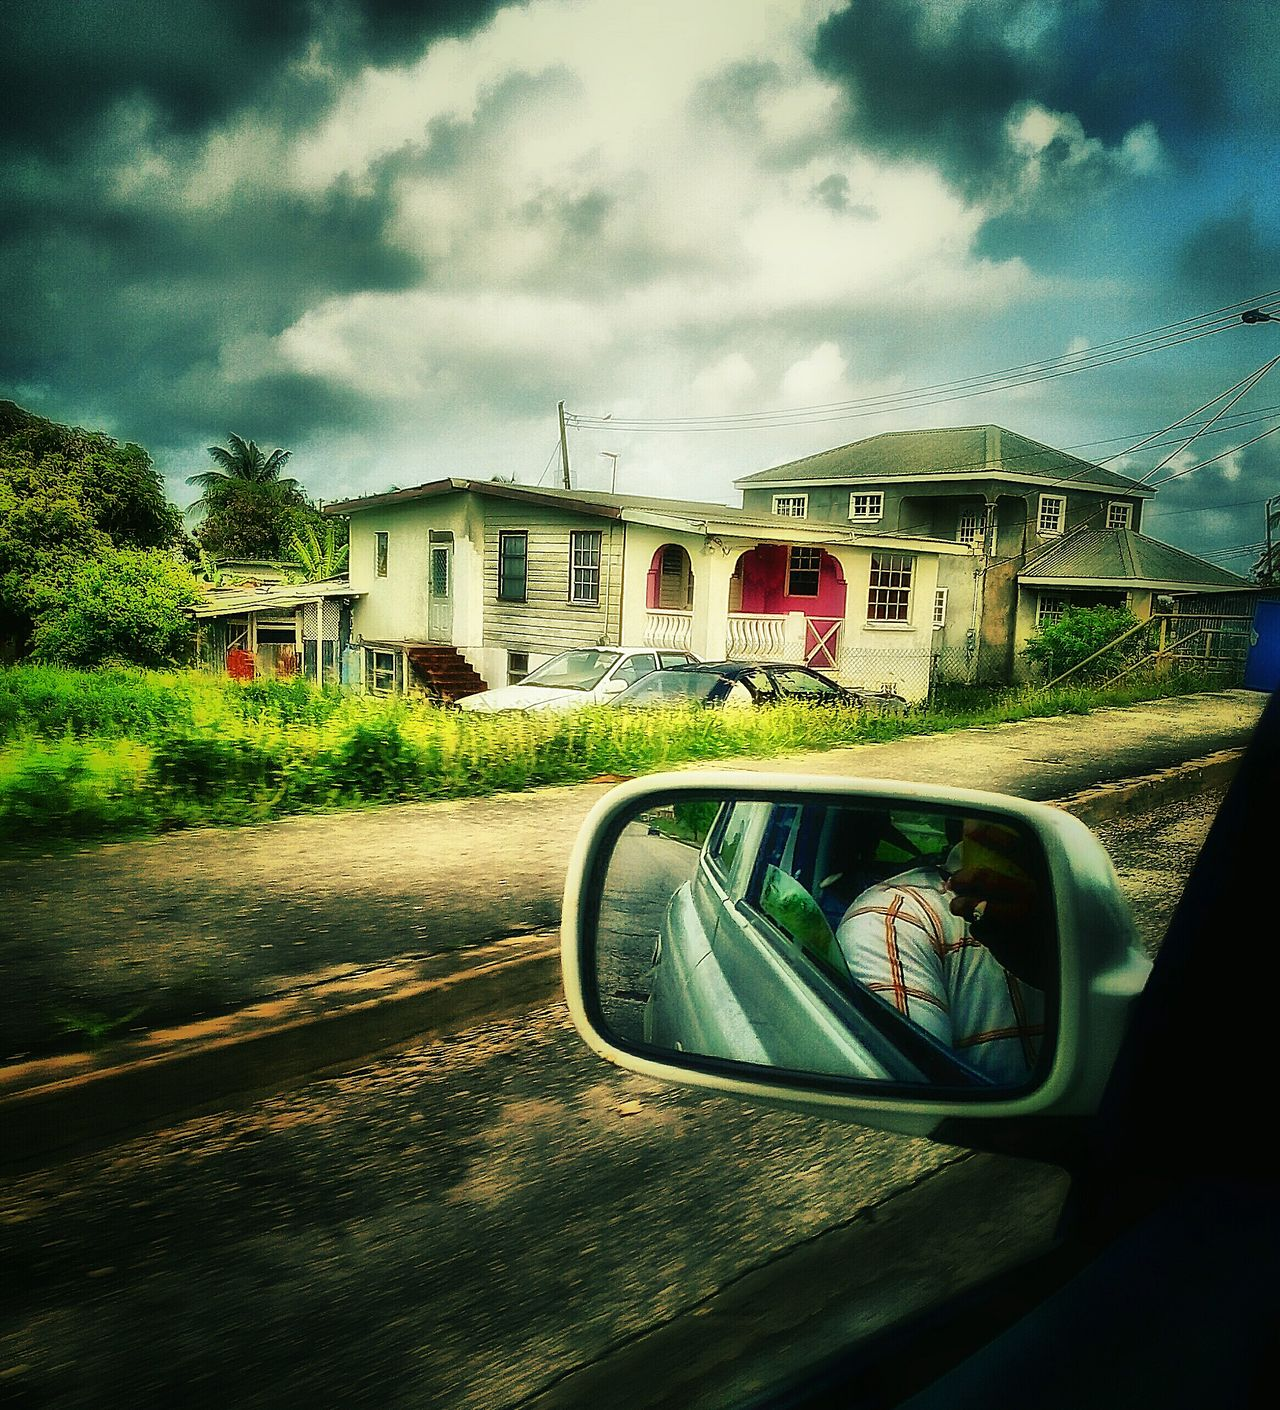 Driving By Driving Around House And Home House And Trees House And Sky Taking Photos Check This Out Nature On Your Doorstep Clouds And Sky Countryside Man Made Beauty Man Made Structure EyeEm Gallery Barbados 2016